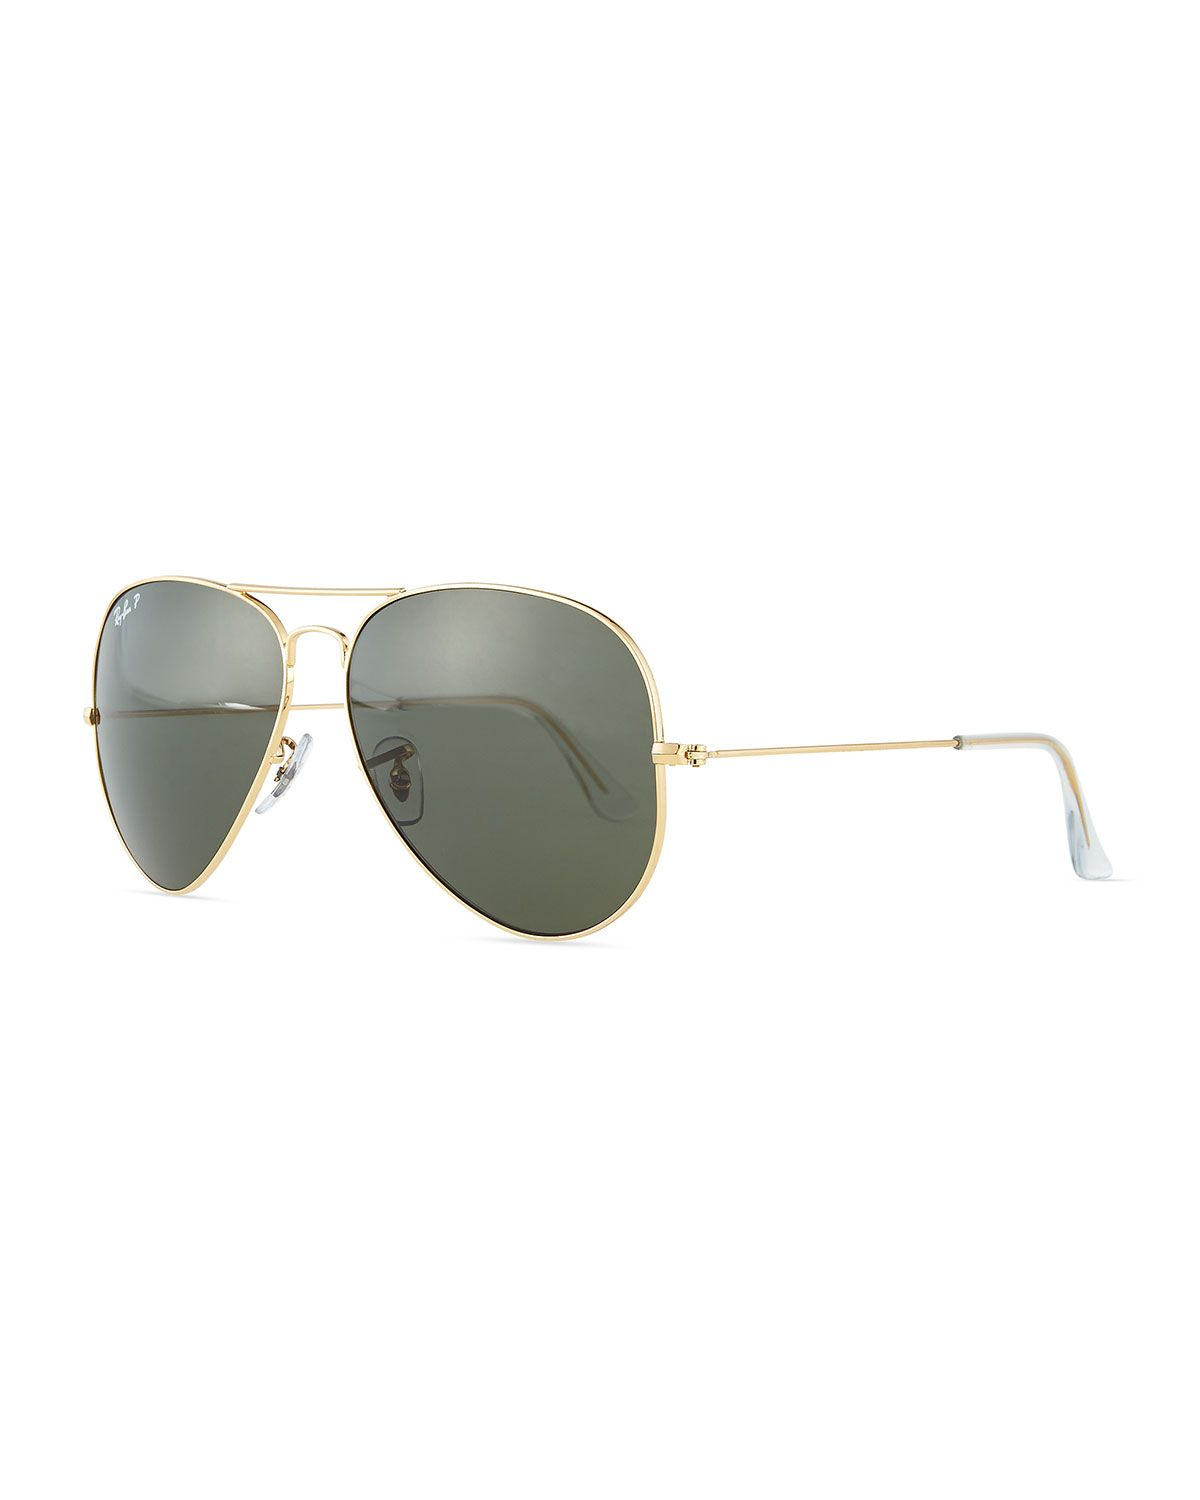 29dc5da87d Imágenes de Ray Ban Original Aviator Polarized Sunglasses Gold ...